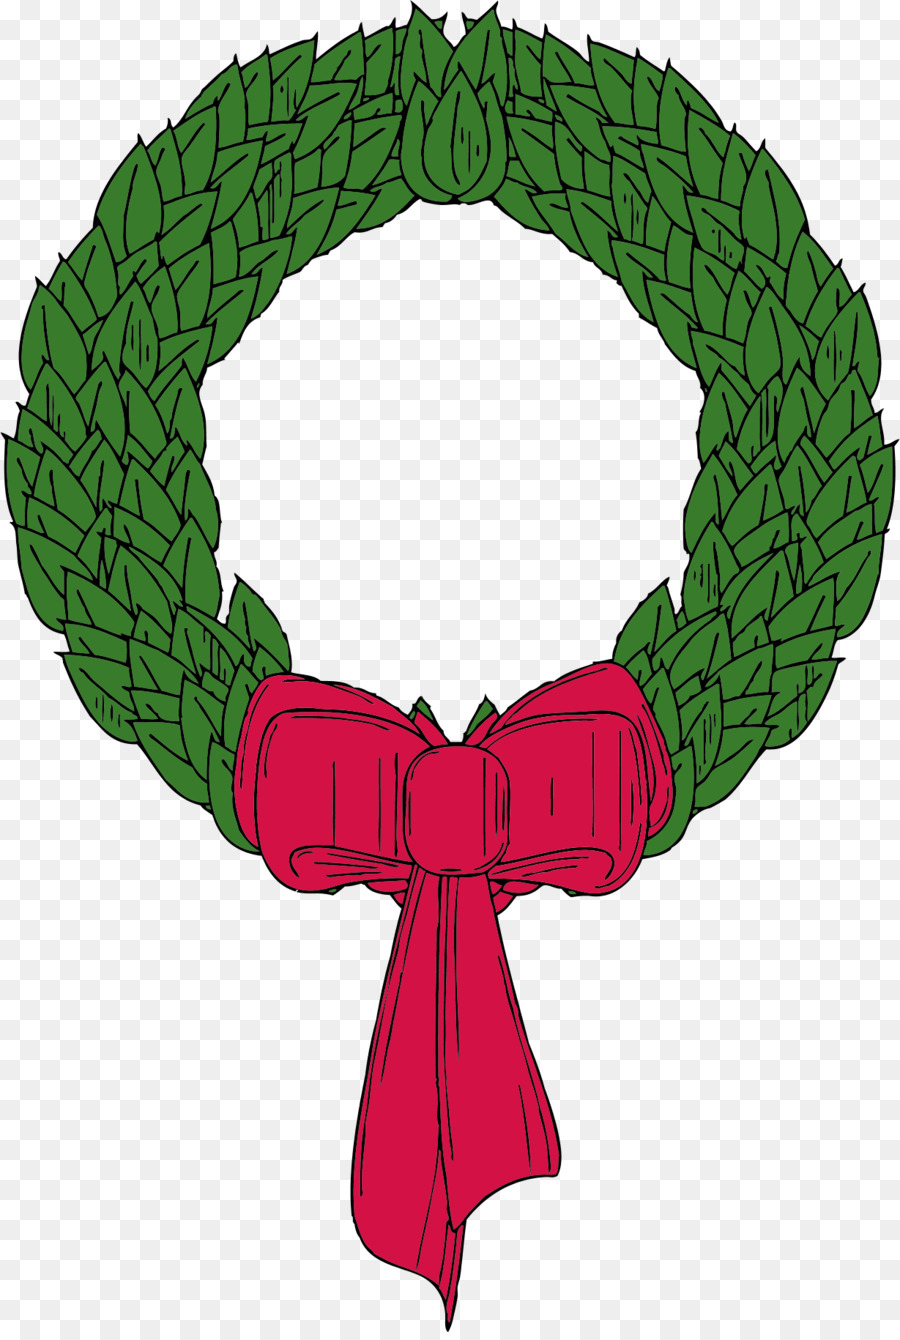 Christmas Wreath Drawingtransparent png image & clipart free download.